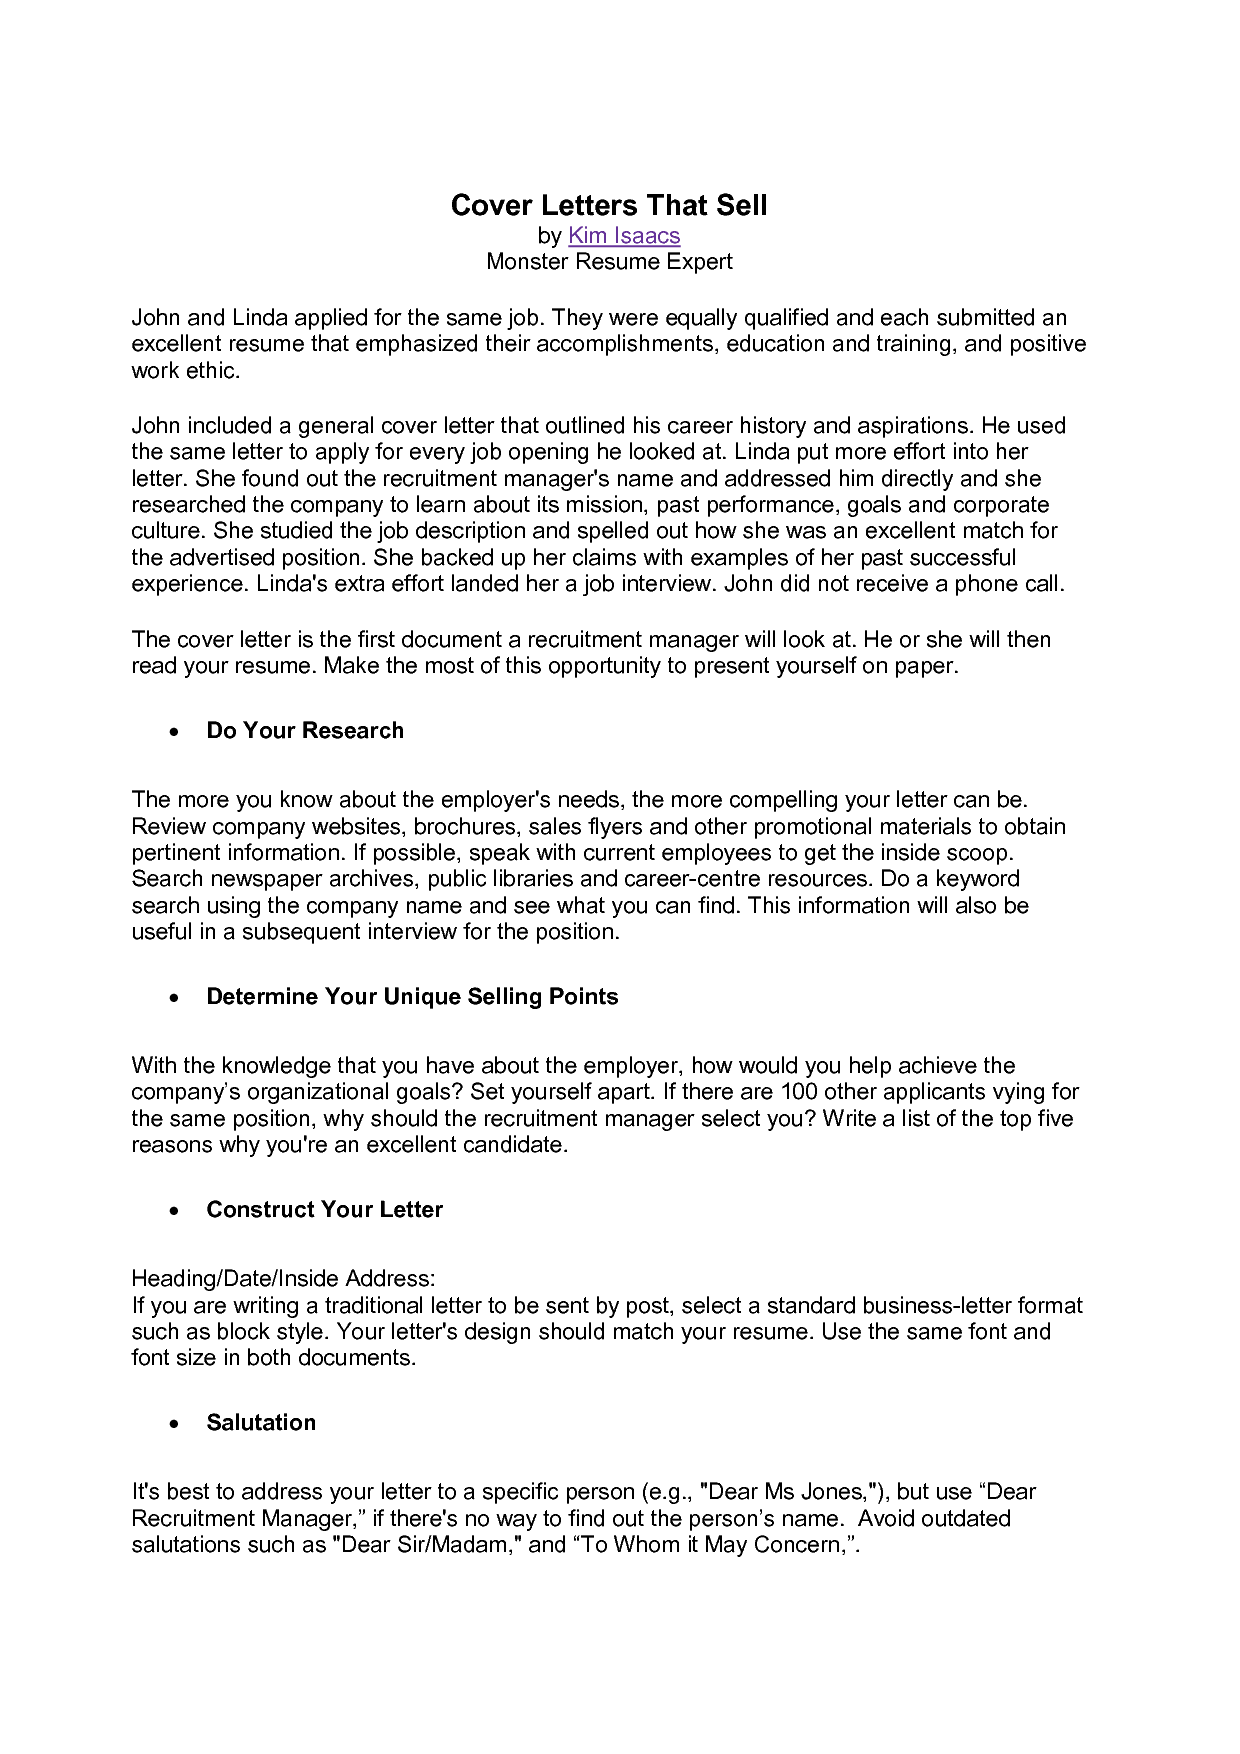 explore good cover letter examples and more